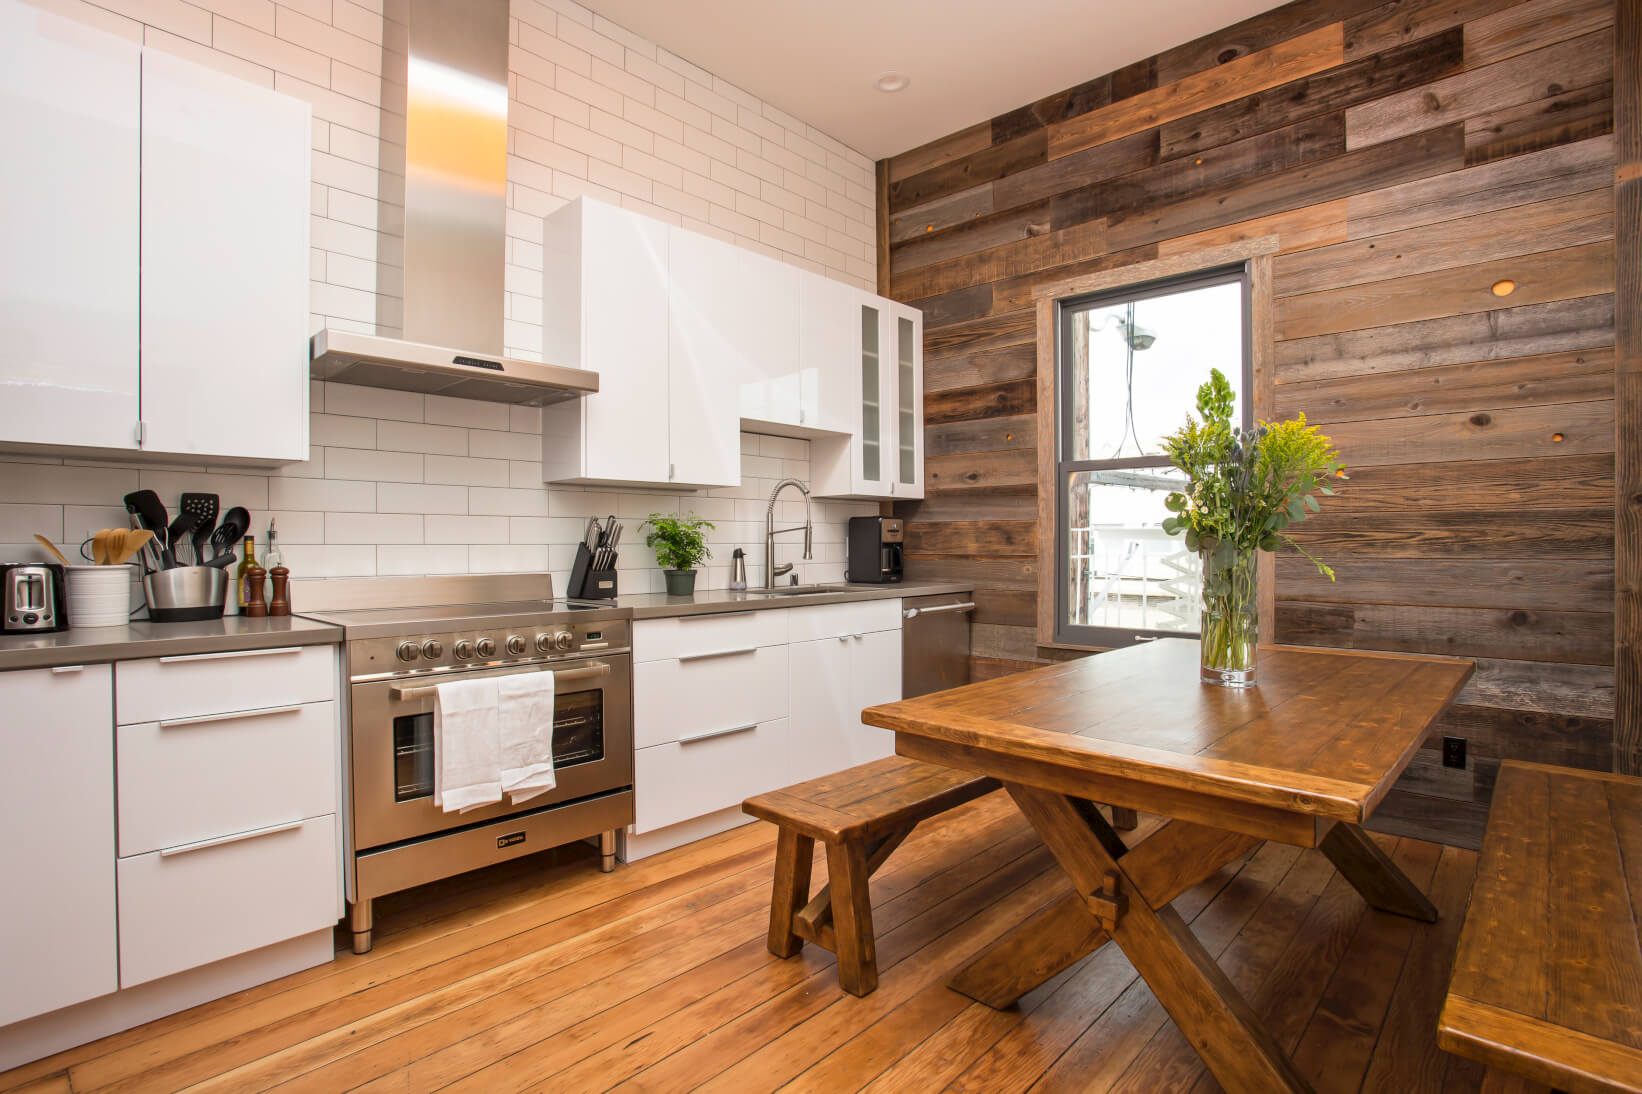 Common Valencia in SoMa, San Francisco is Common's second coliving home in California.